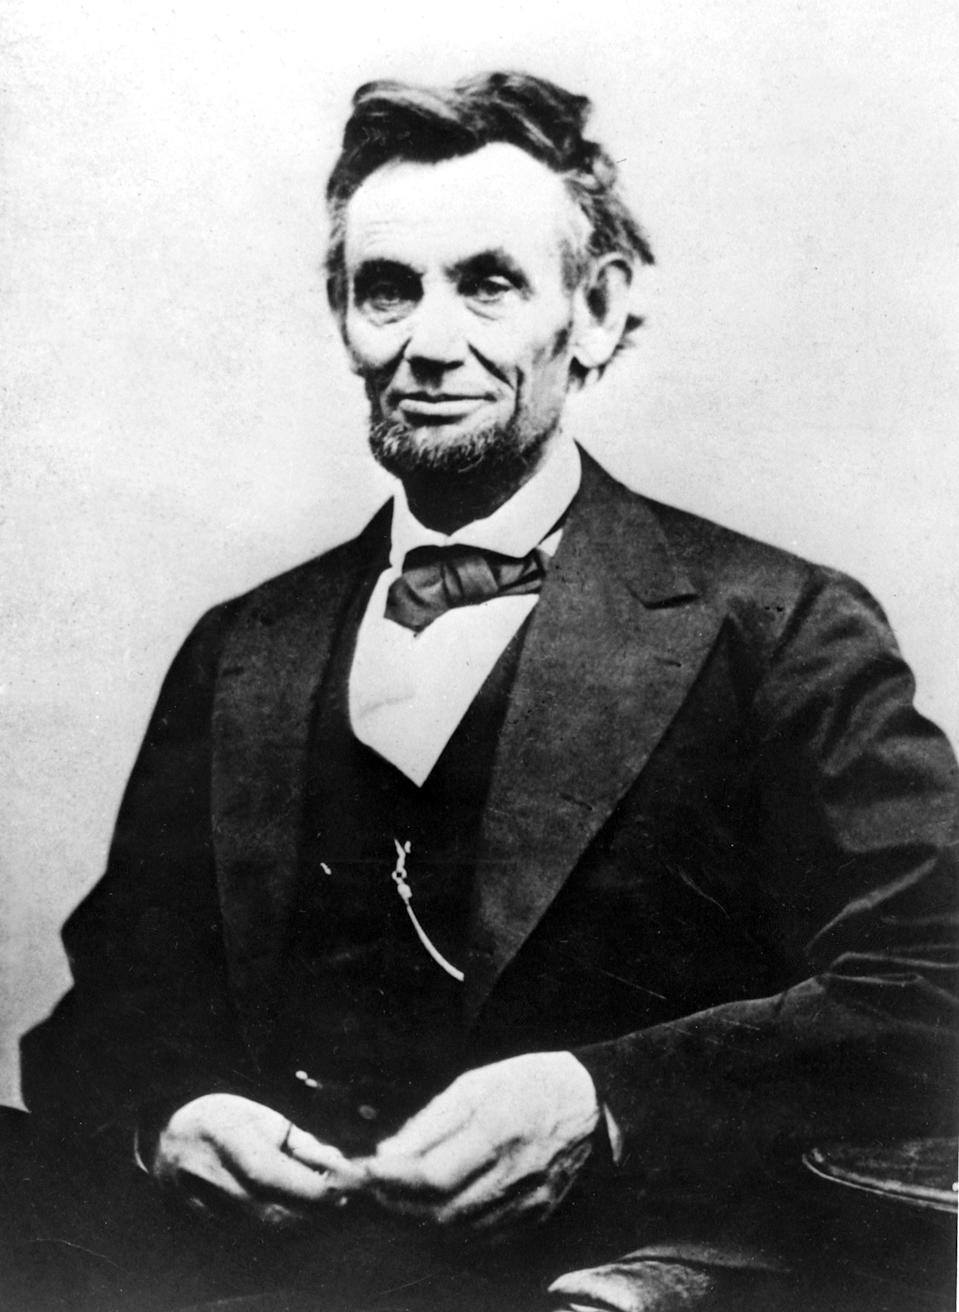 Portrait of Abraham Lincoln (1809-1865) by the photographer Alexander Gardner, 1865, United States, Washington. Library of Congress, . (Photo by: Photo12/Universal Images Group via Getty Images)